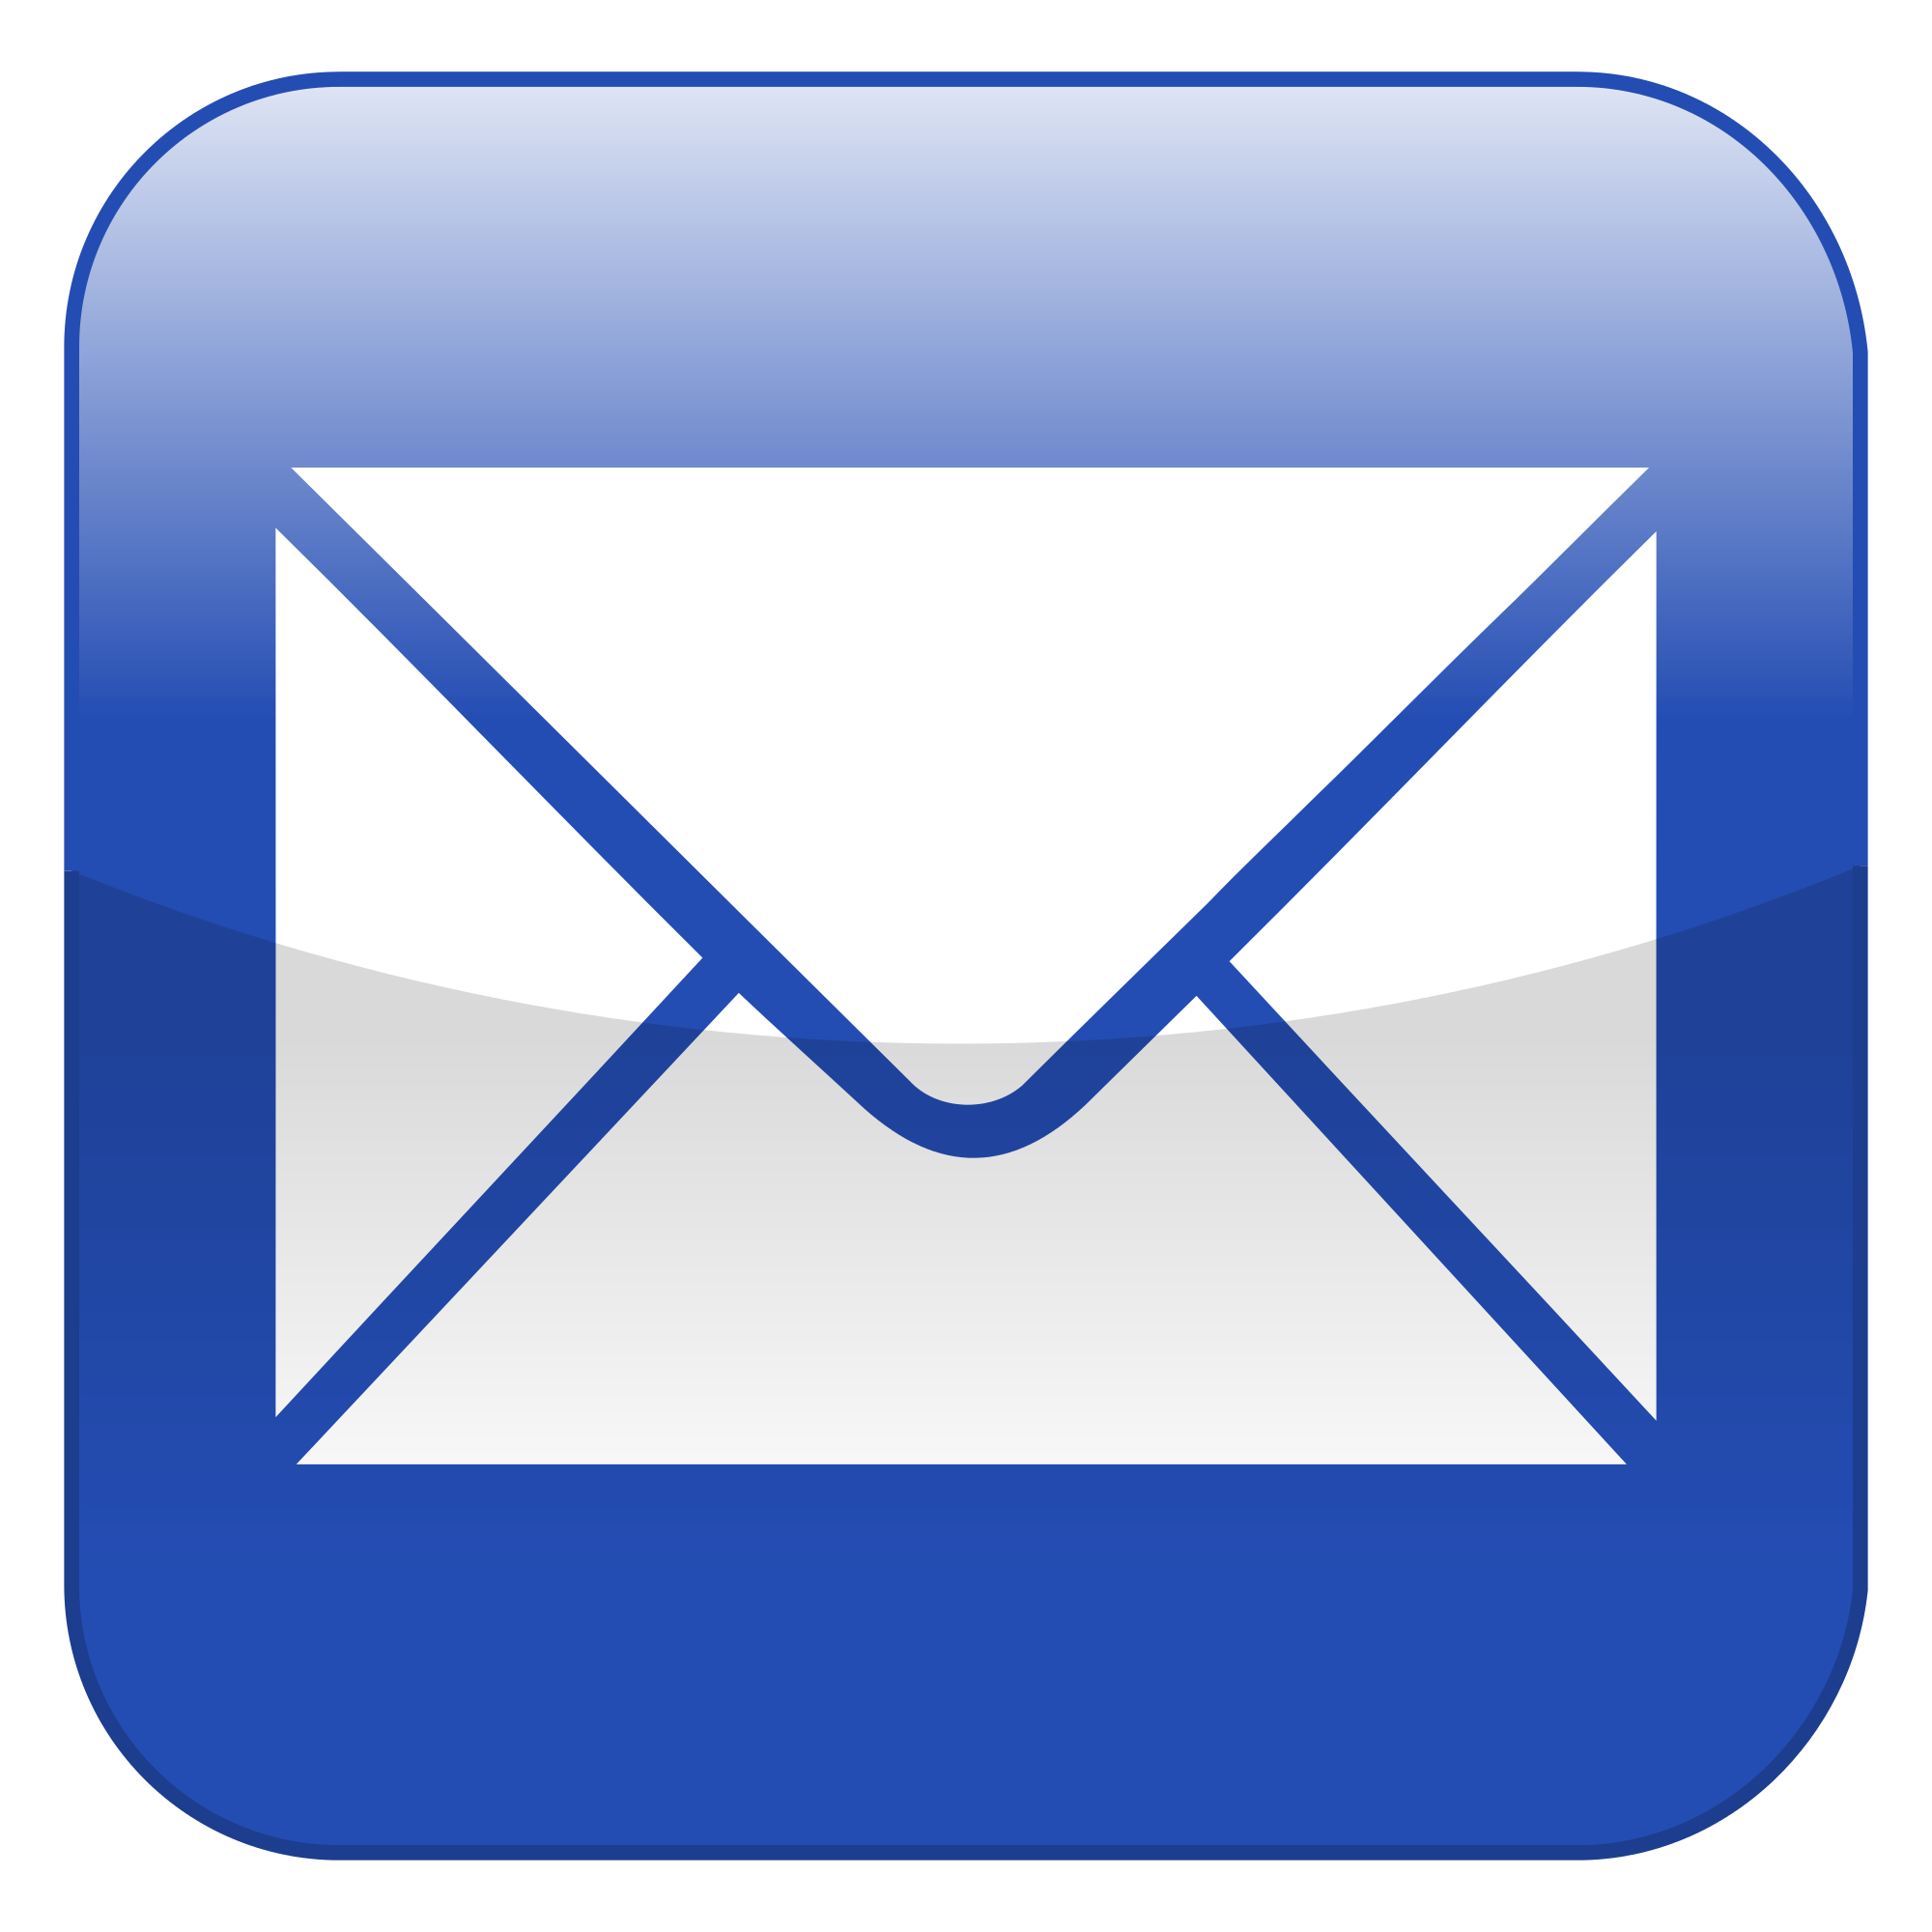 Email logo png. Correo electronico image